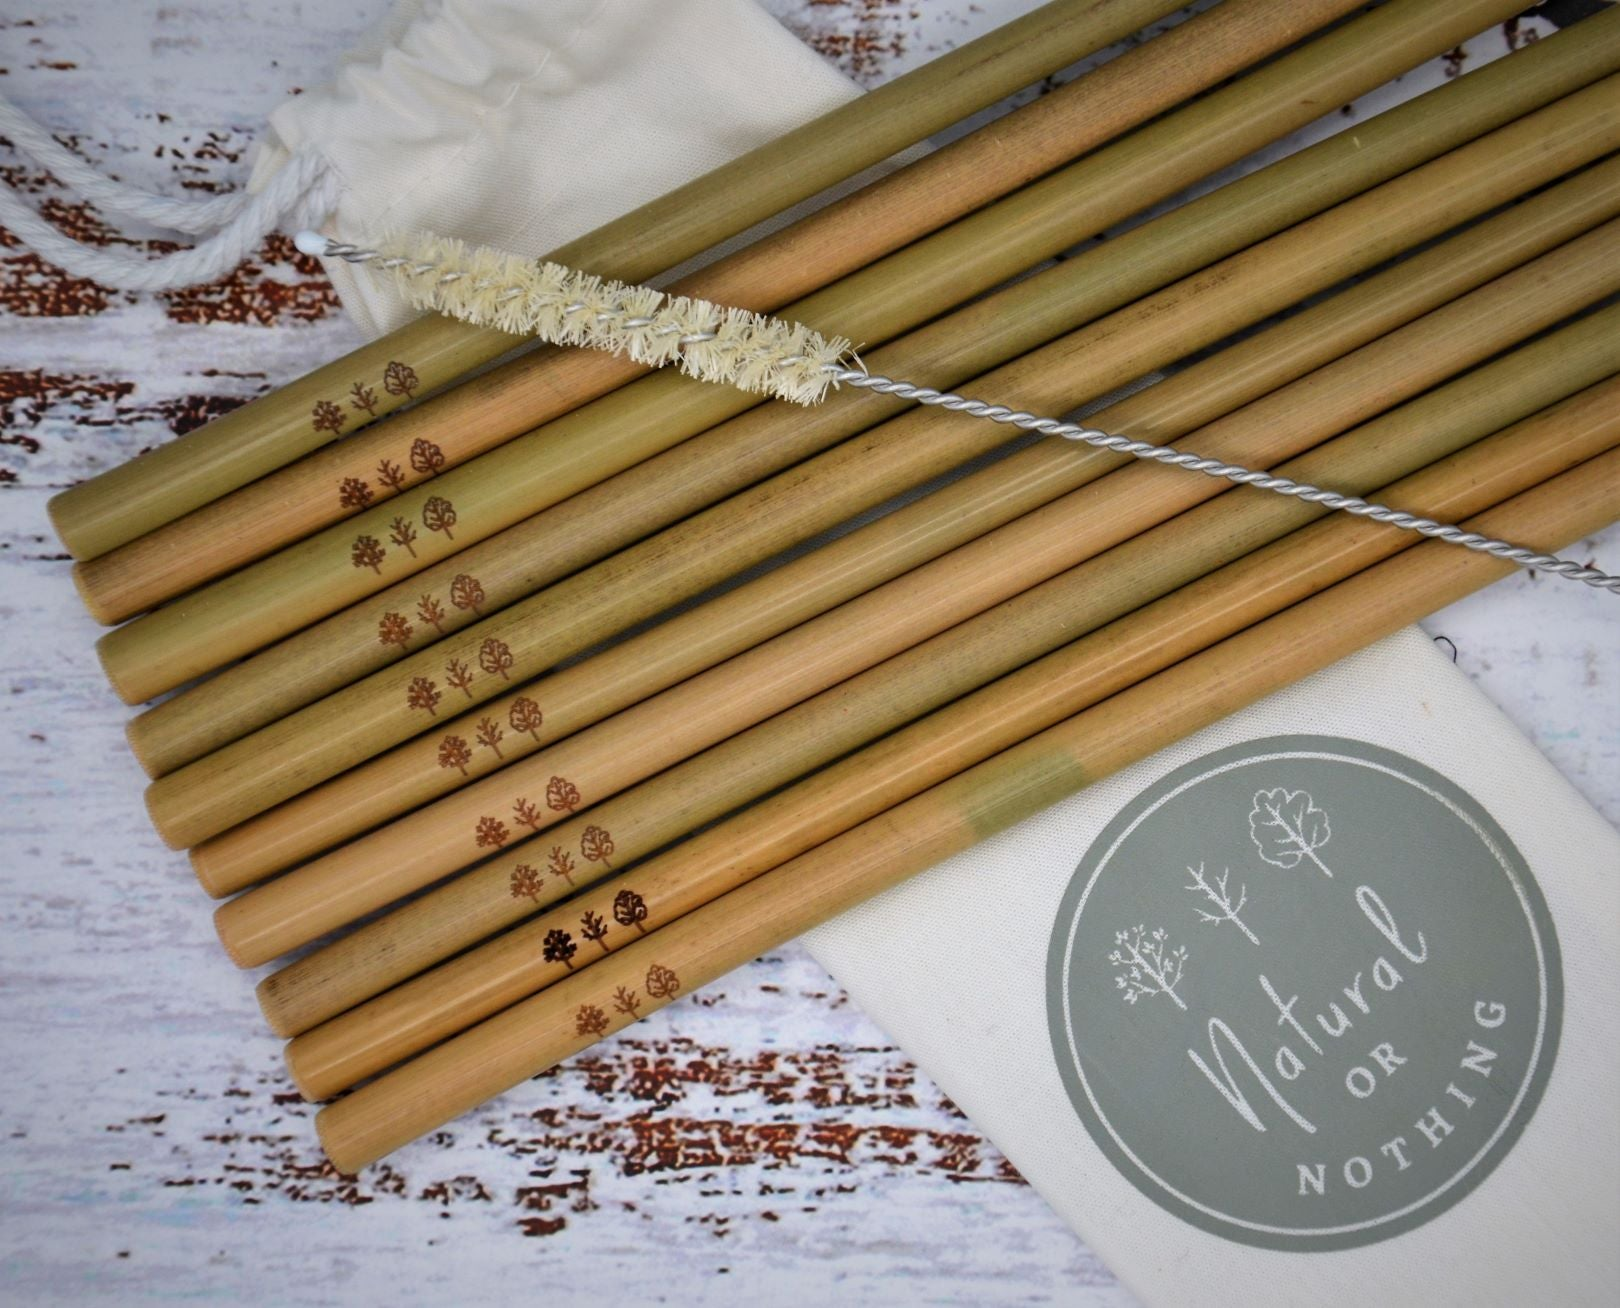 Bamboo straws laid over canvas bag with sisal straw cleaner close up view